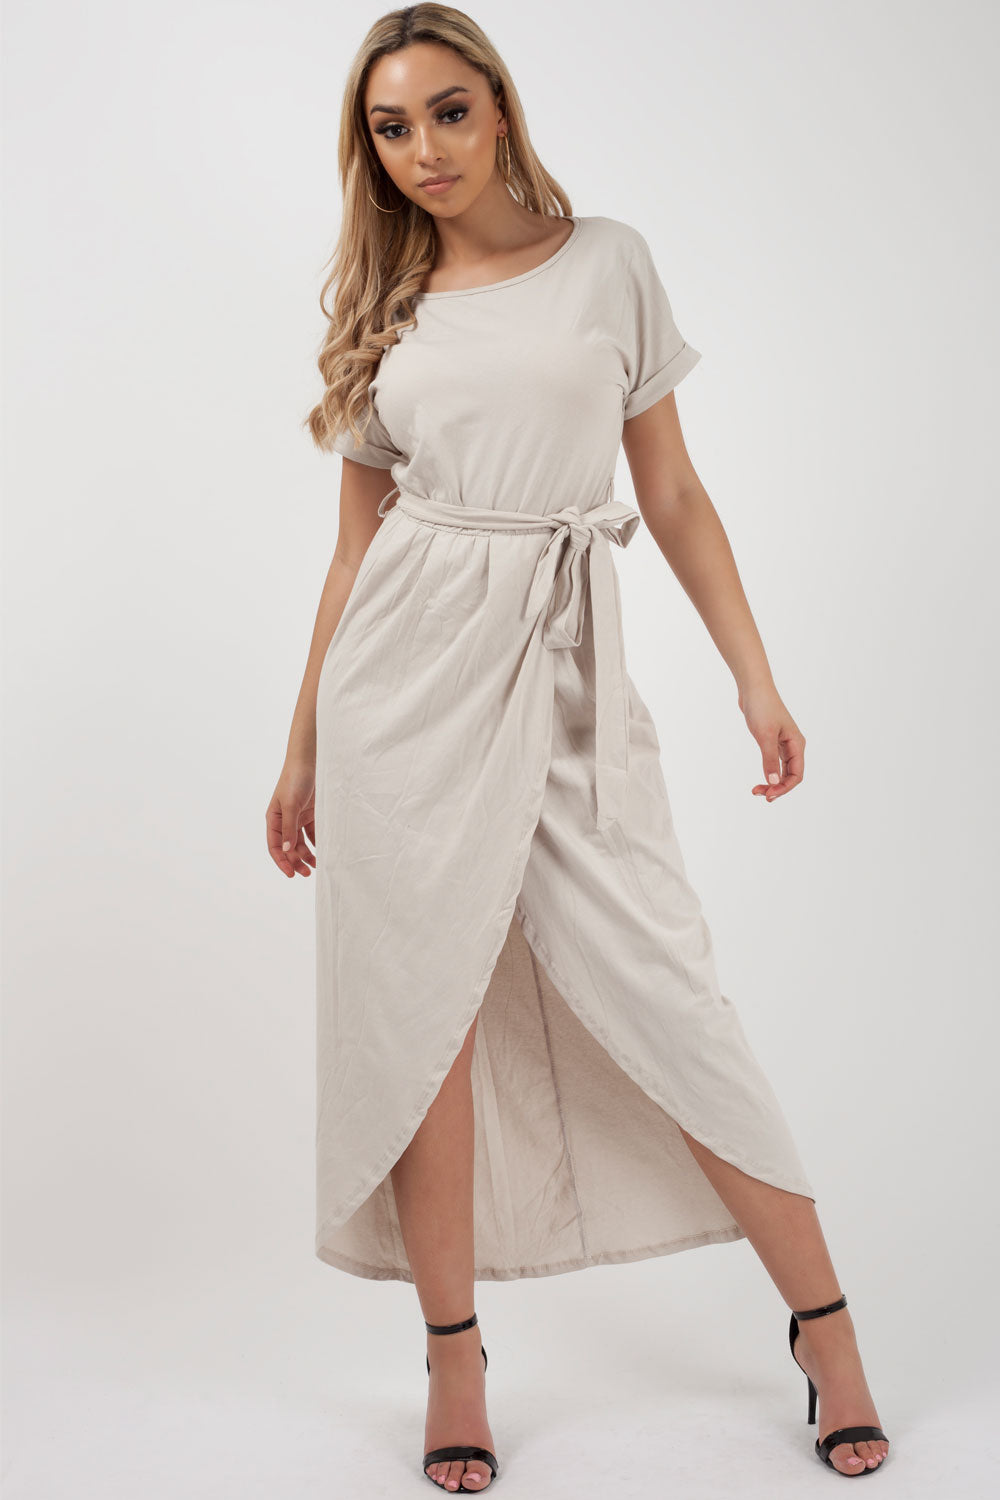 rap maxi dress uk